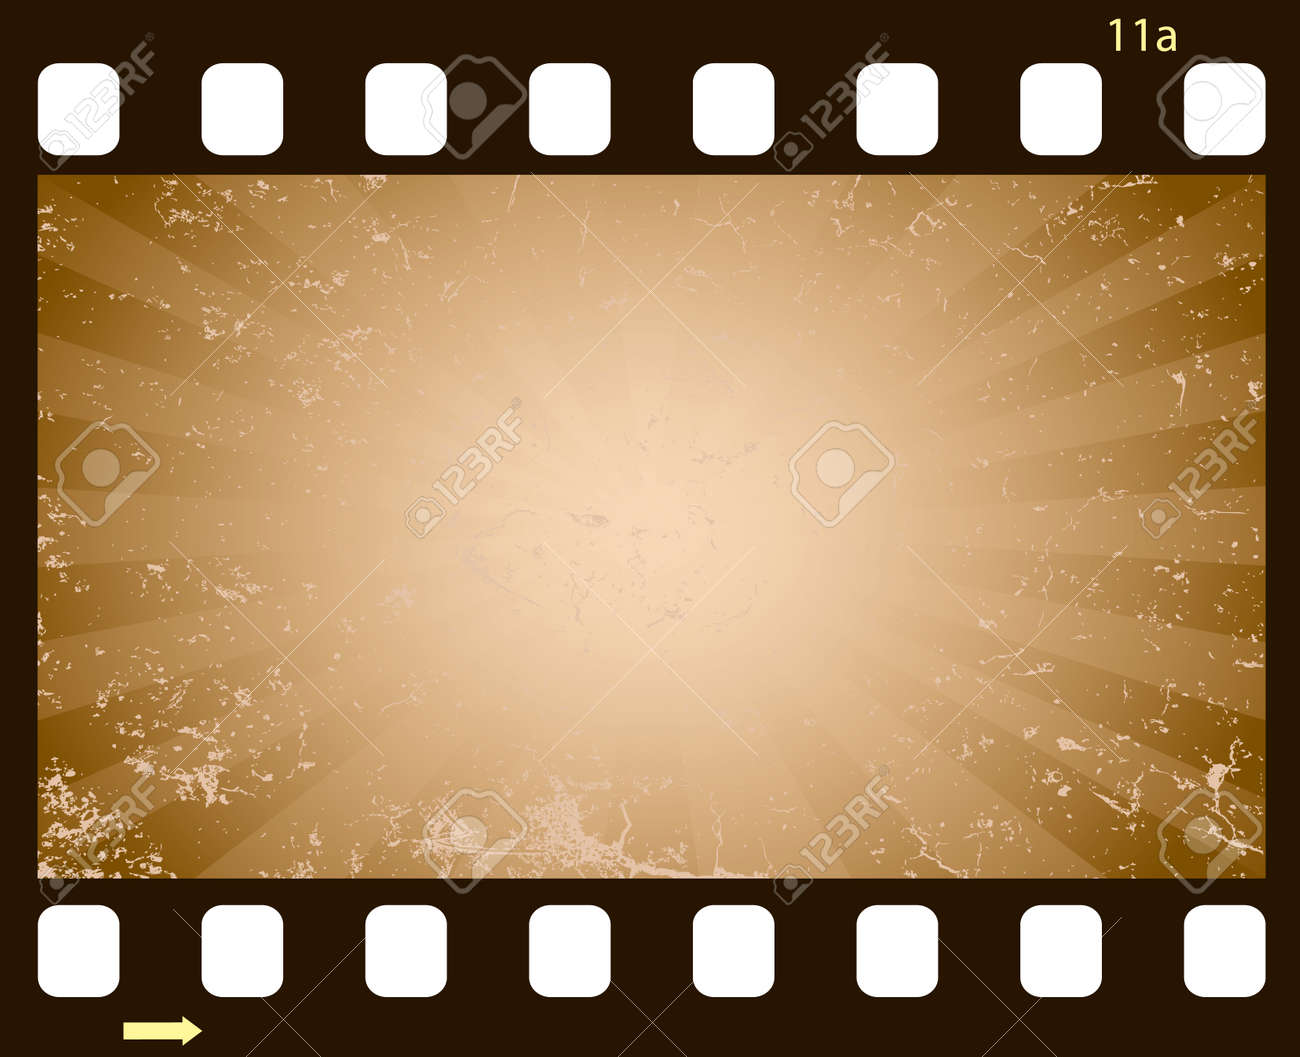 Grunge Camera Vector : Grunge film background royalty free cliparts vectors and stock